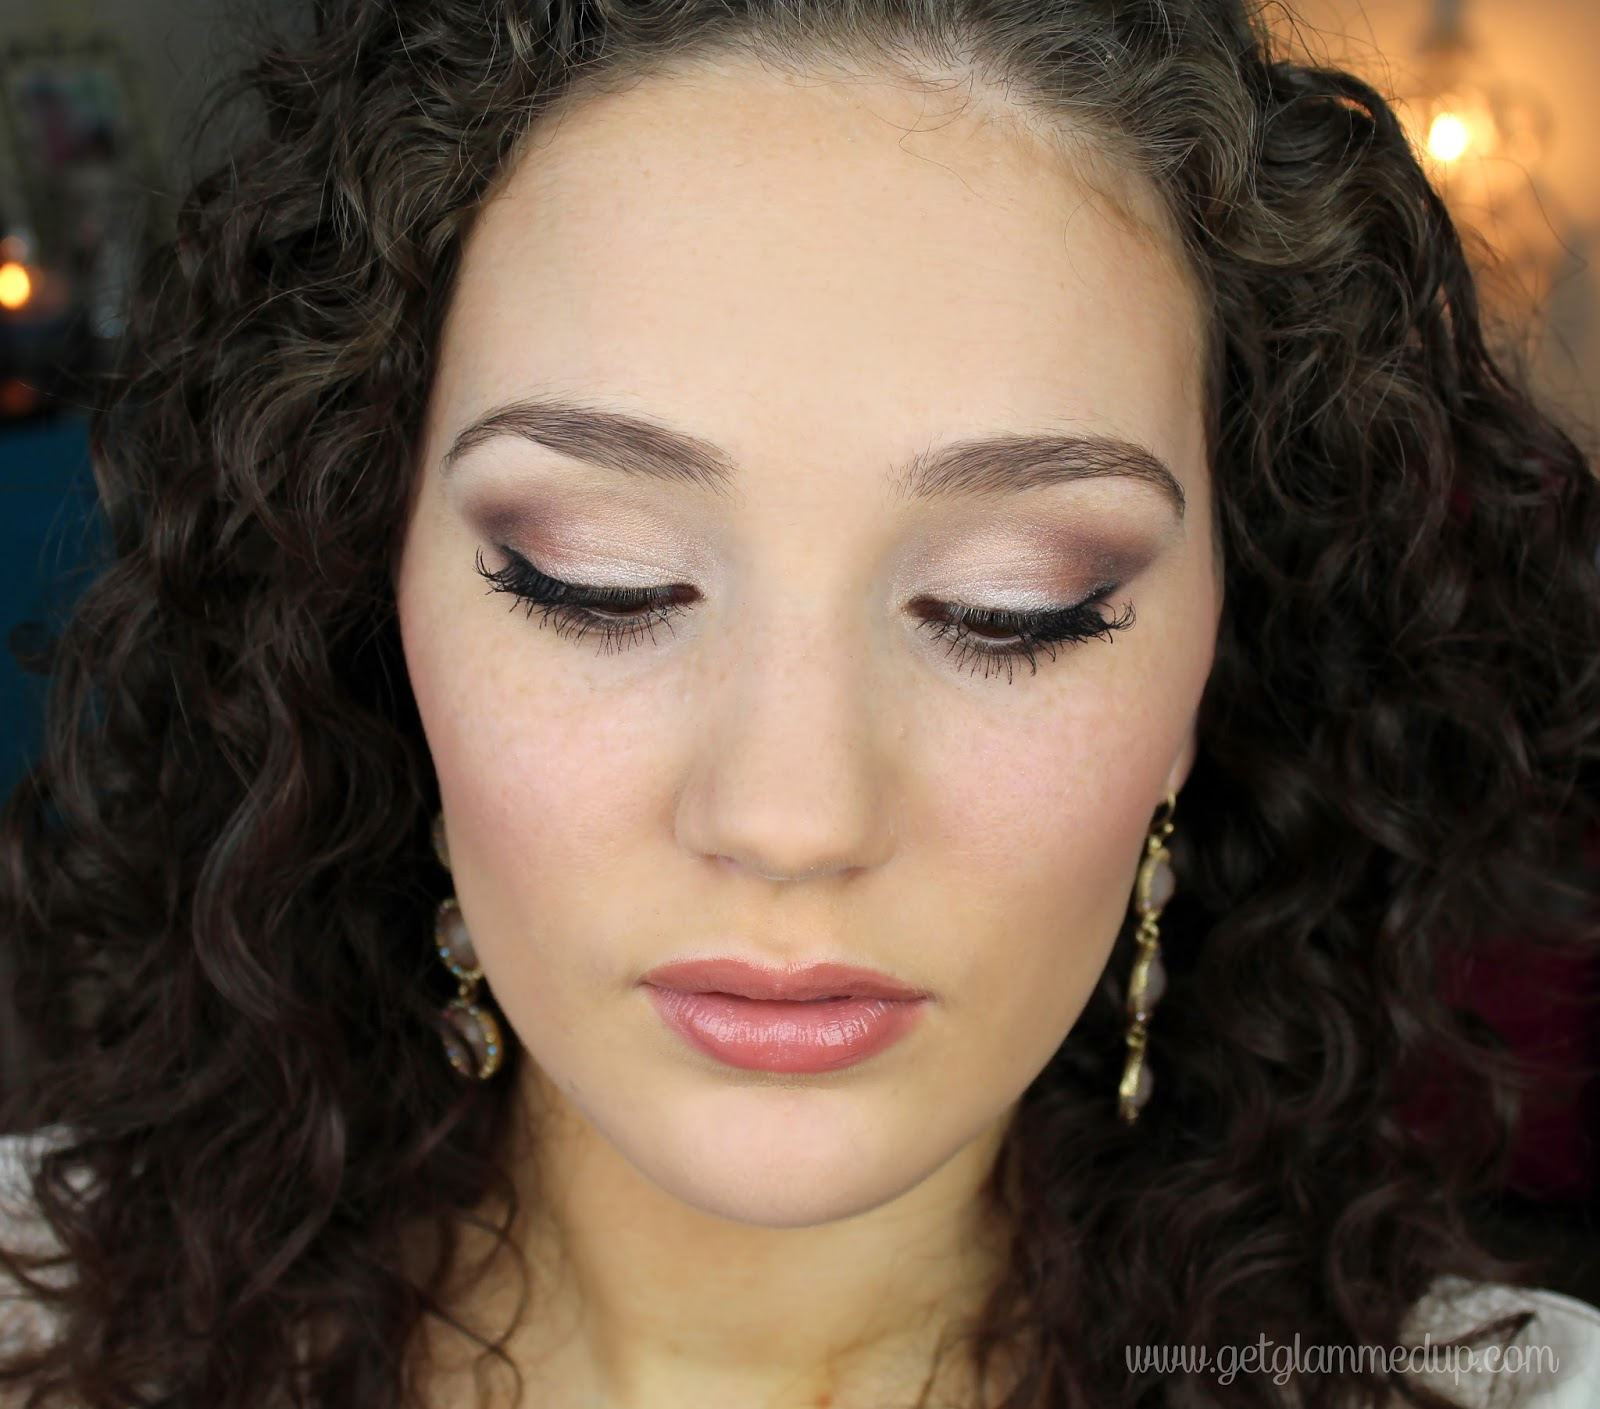 VIDEO: Prom Makeup Tutorial u0026 Dress Trends for 2014: GetGlammedUp